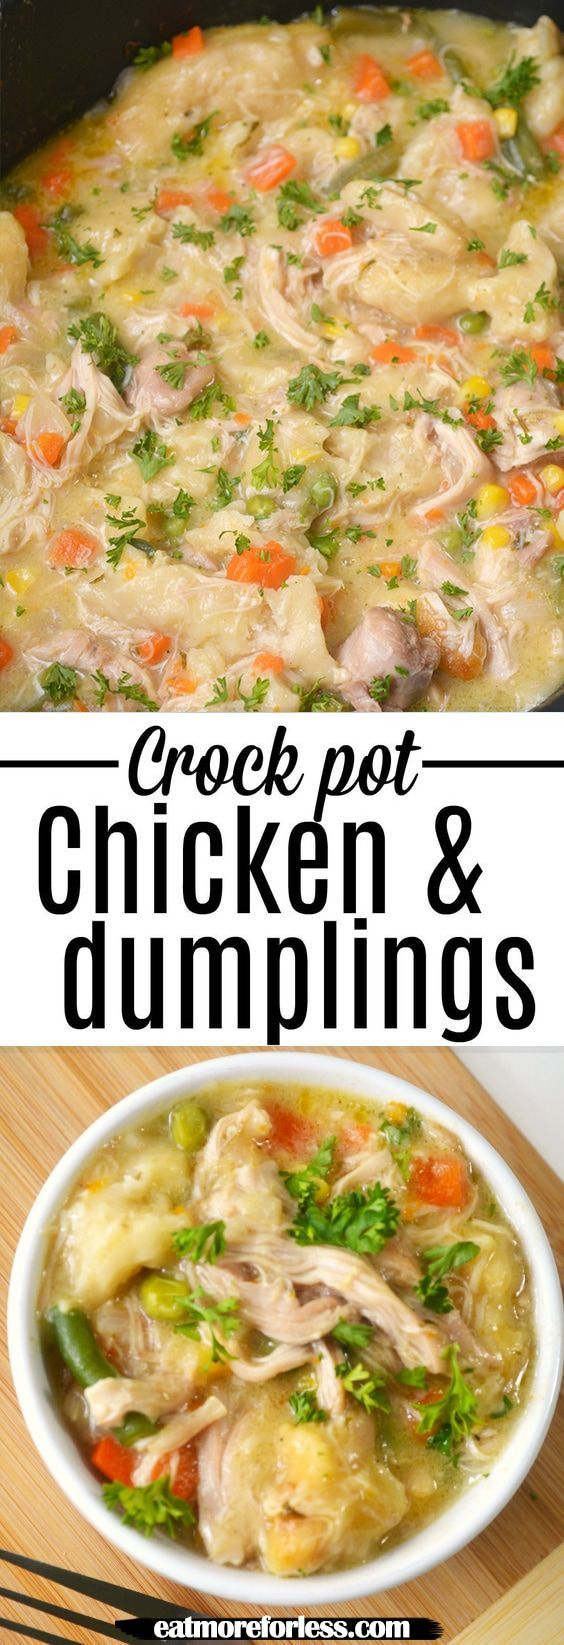 Crock Pot Chicken and Dumplings #chickendumplingscrockpot